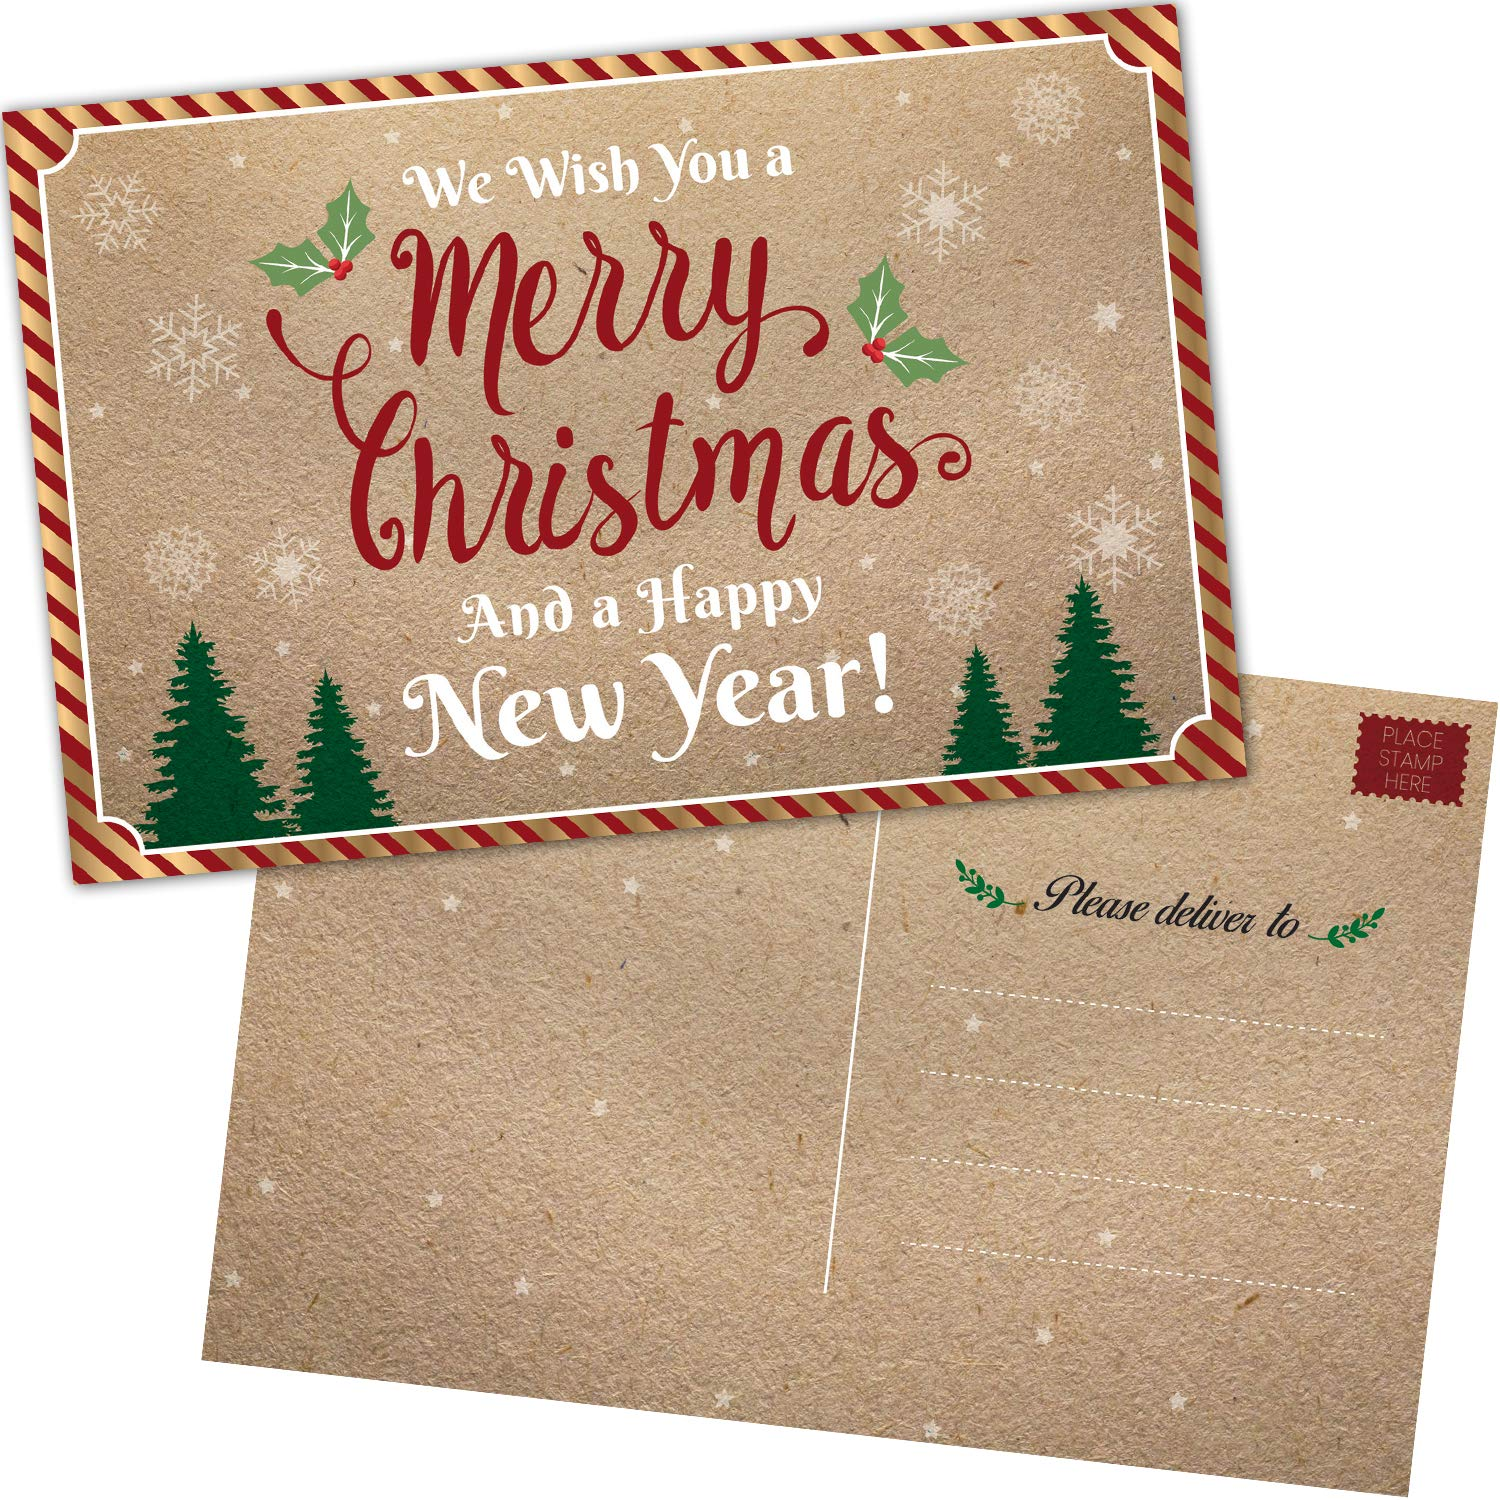 50 Christmas Cards: Happy Holiday and Happy New Years Cards 2019 - Bulk Postcards Set with Season's Greetings Message - Kraft Thank You Notes for Business, Office, Kids and More T Marie